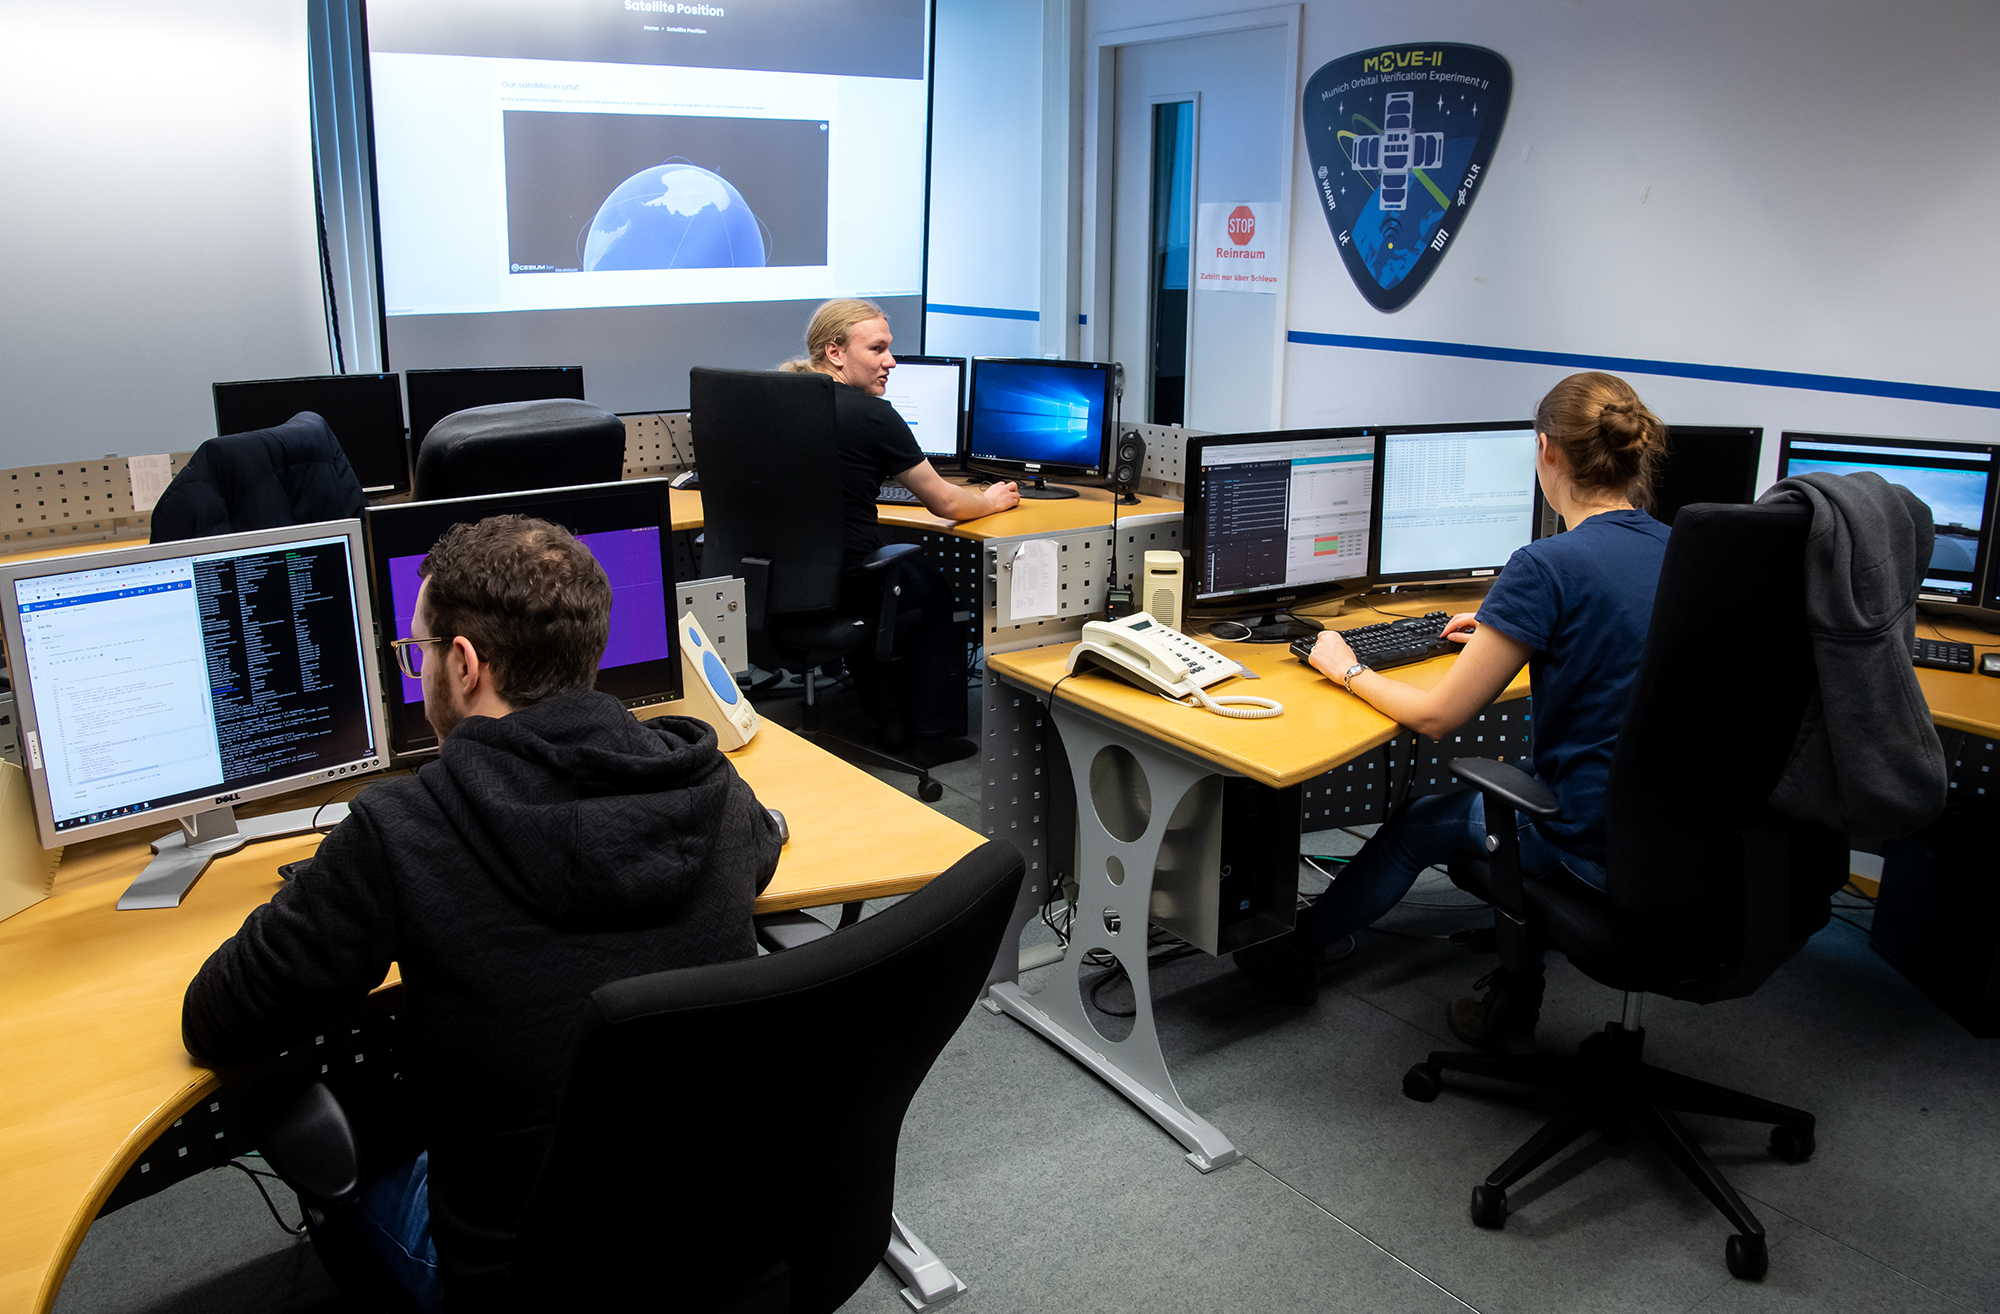 Software tests & fantastic news from Mission Control